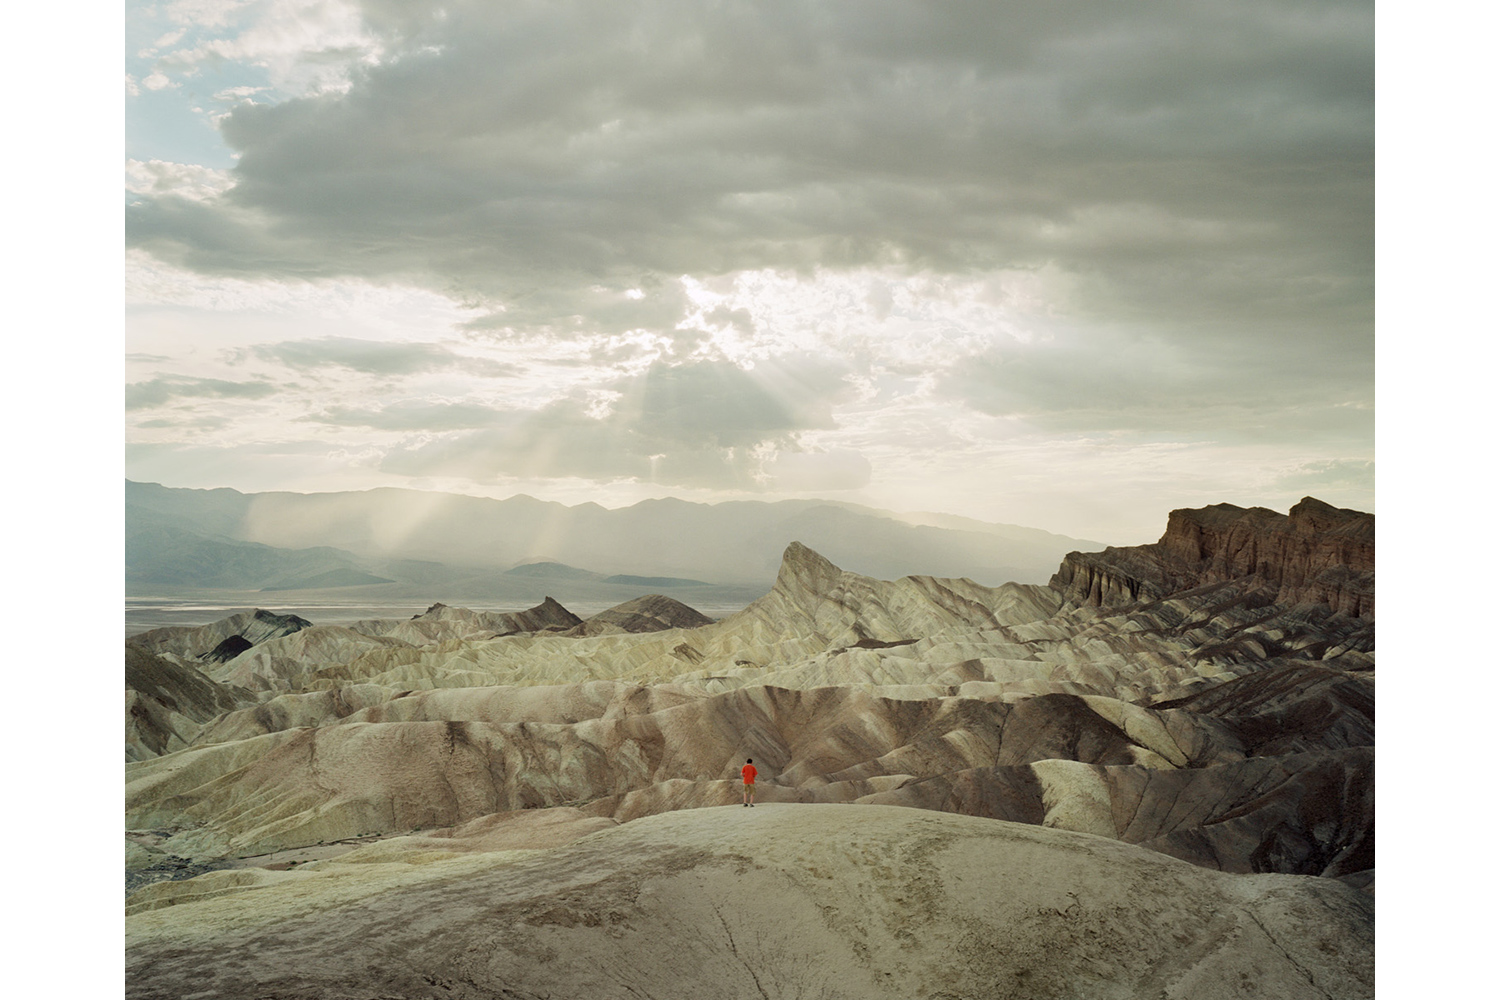 Zabriskie Point, located east of Death Valley in Death Valley National Park, USA, 2005